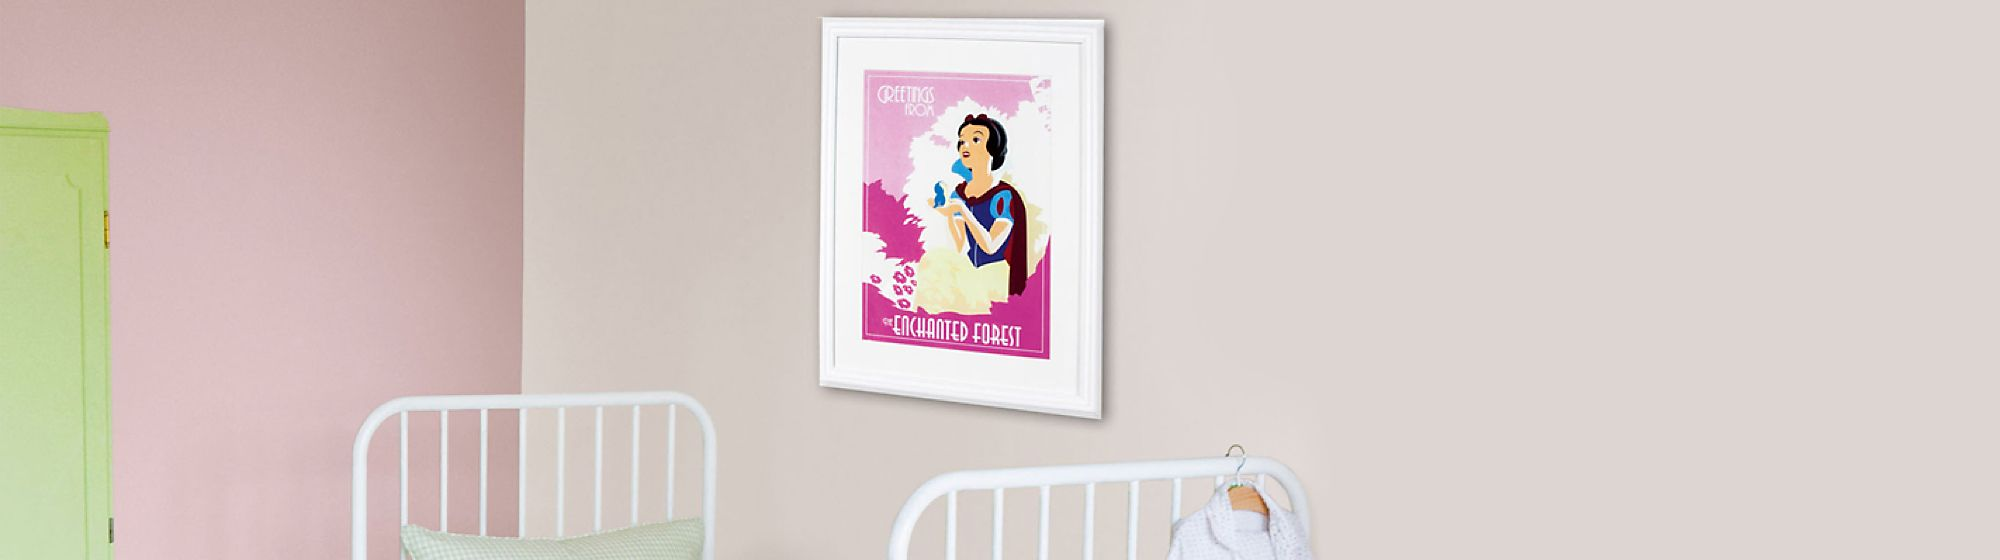 Art Add character to your home with our wall-worthy selection of posters and more